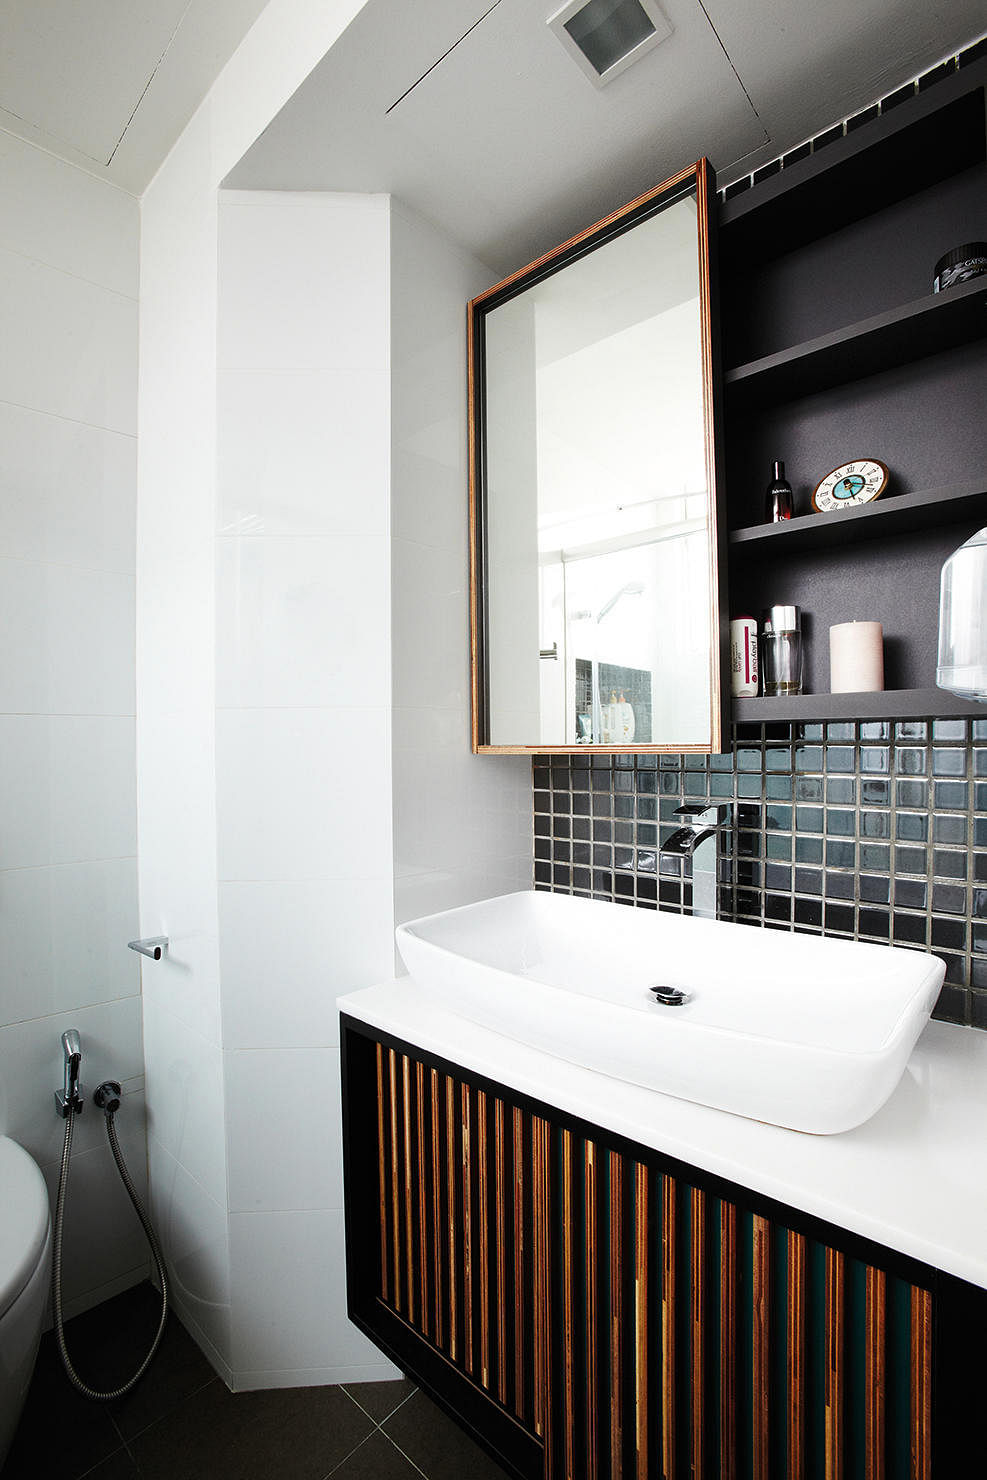 Bathroom design ideas 10 stylish utilitarian style spaces for Bathroom designs singapore